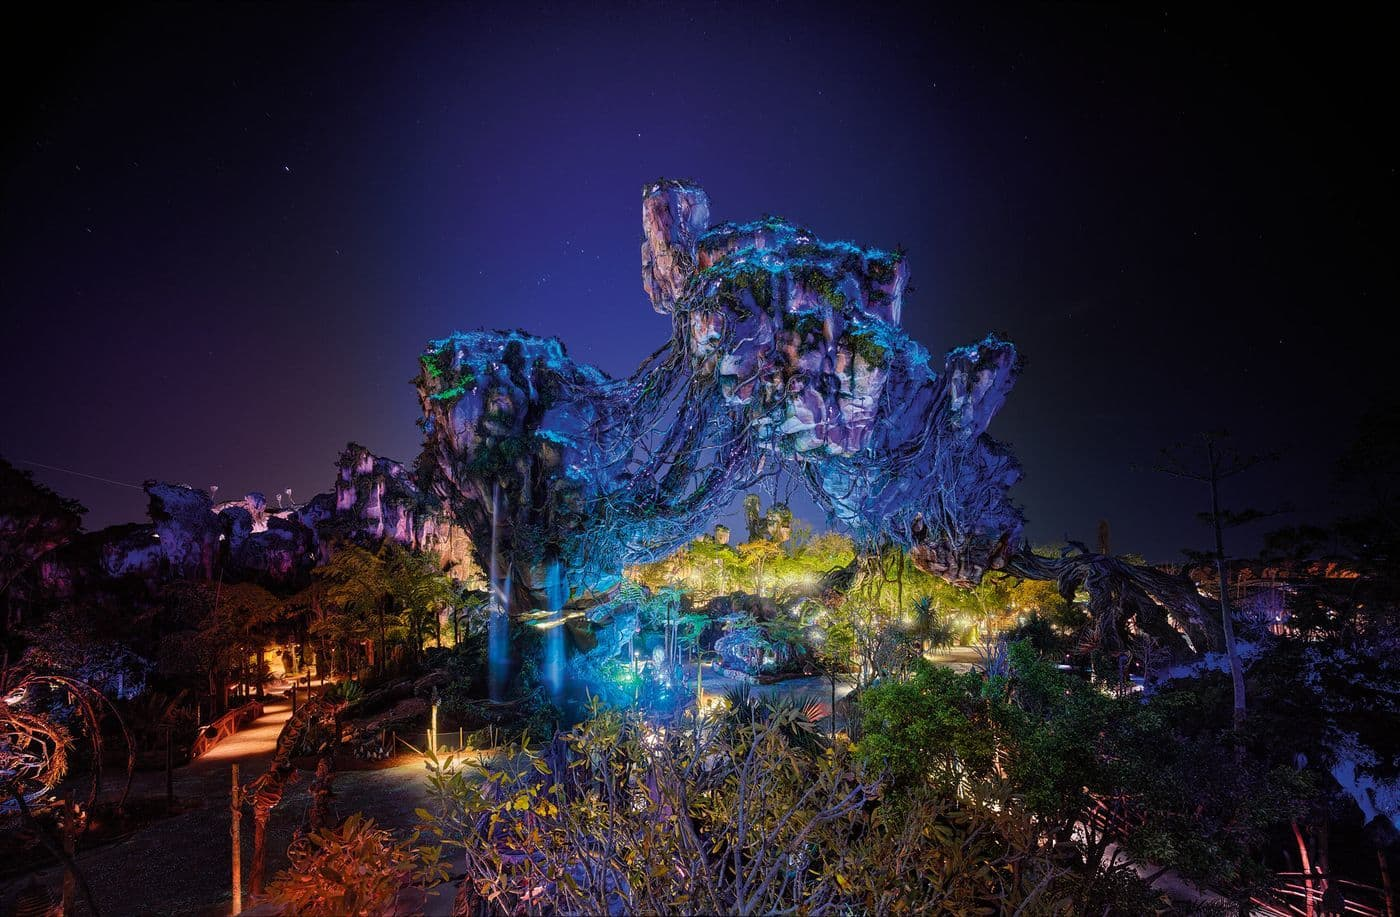 New nighttime photos of Pandora: The World of Avatar light up the night